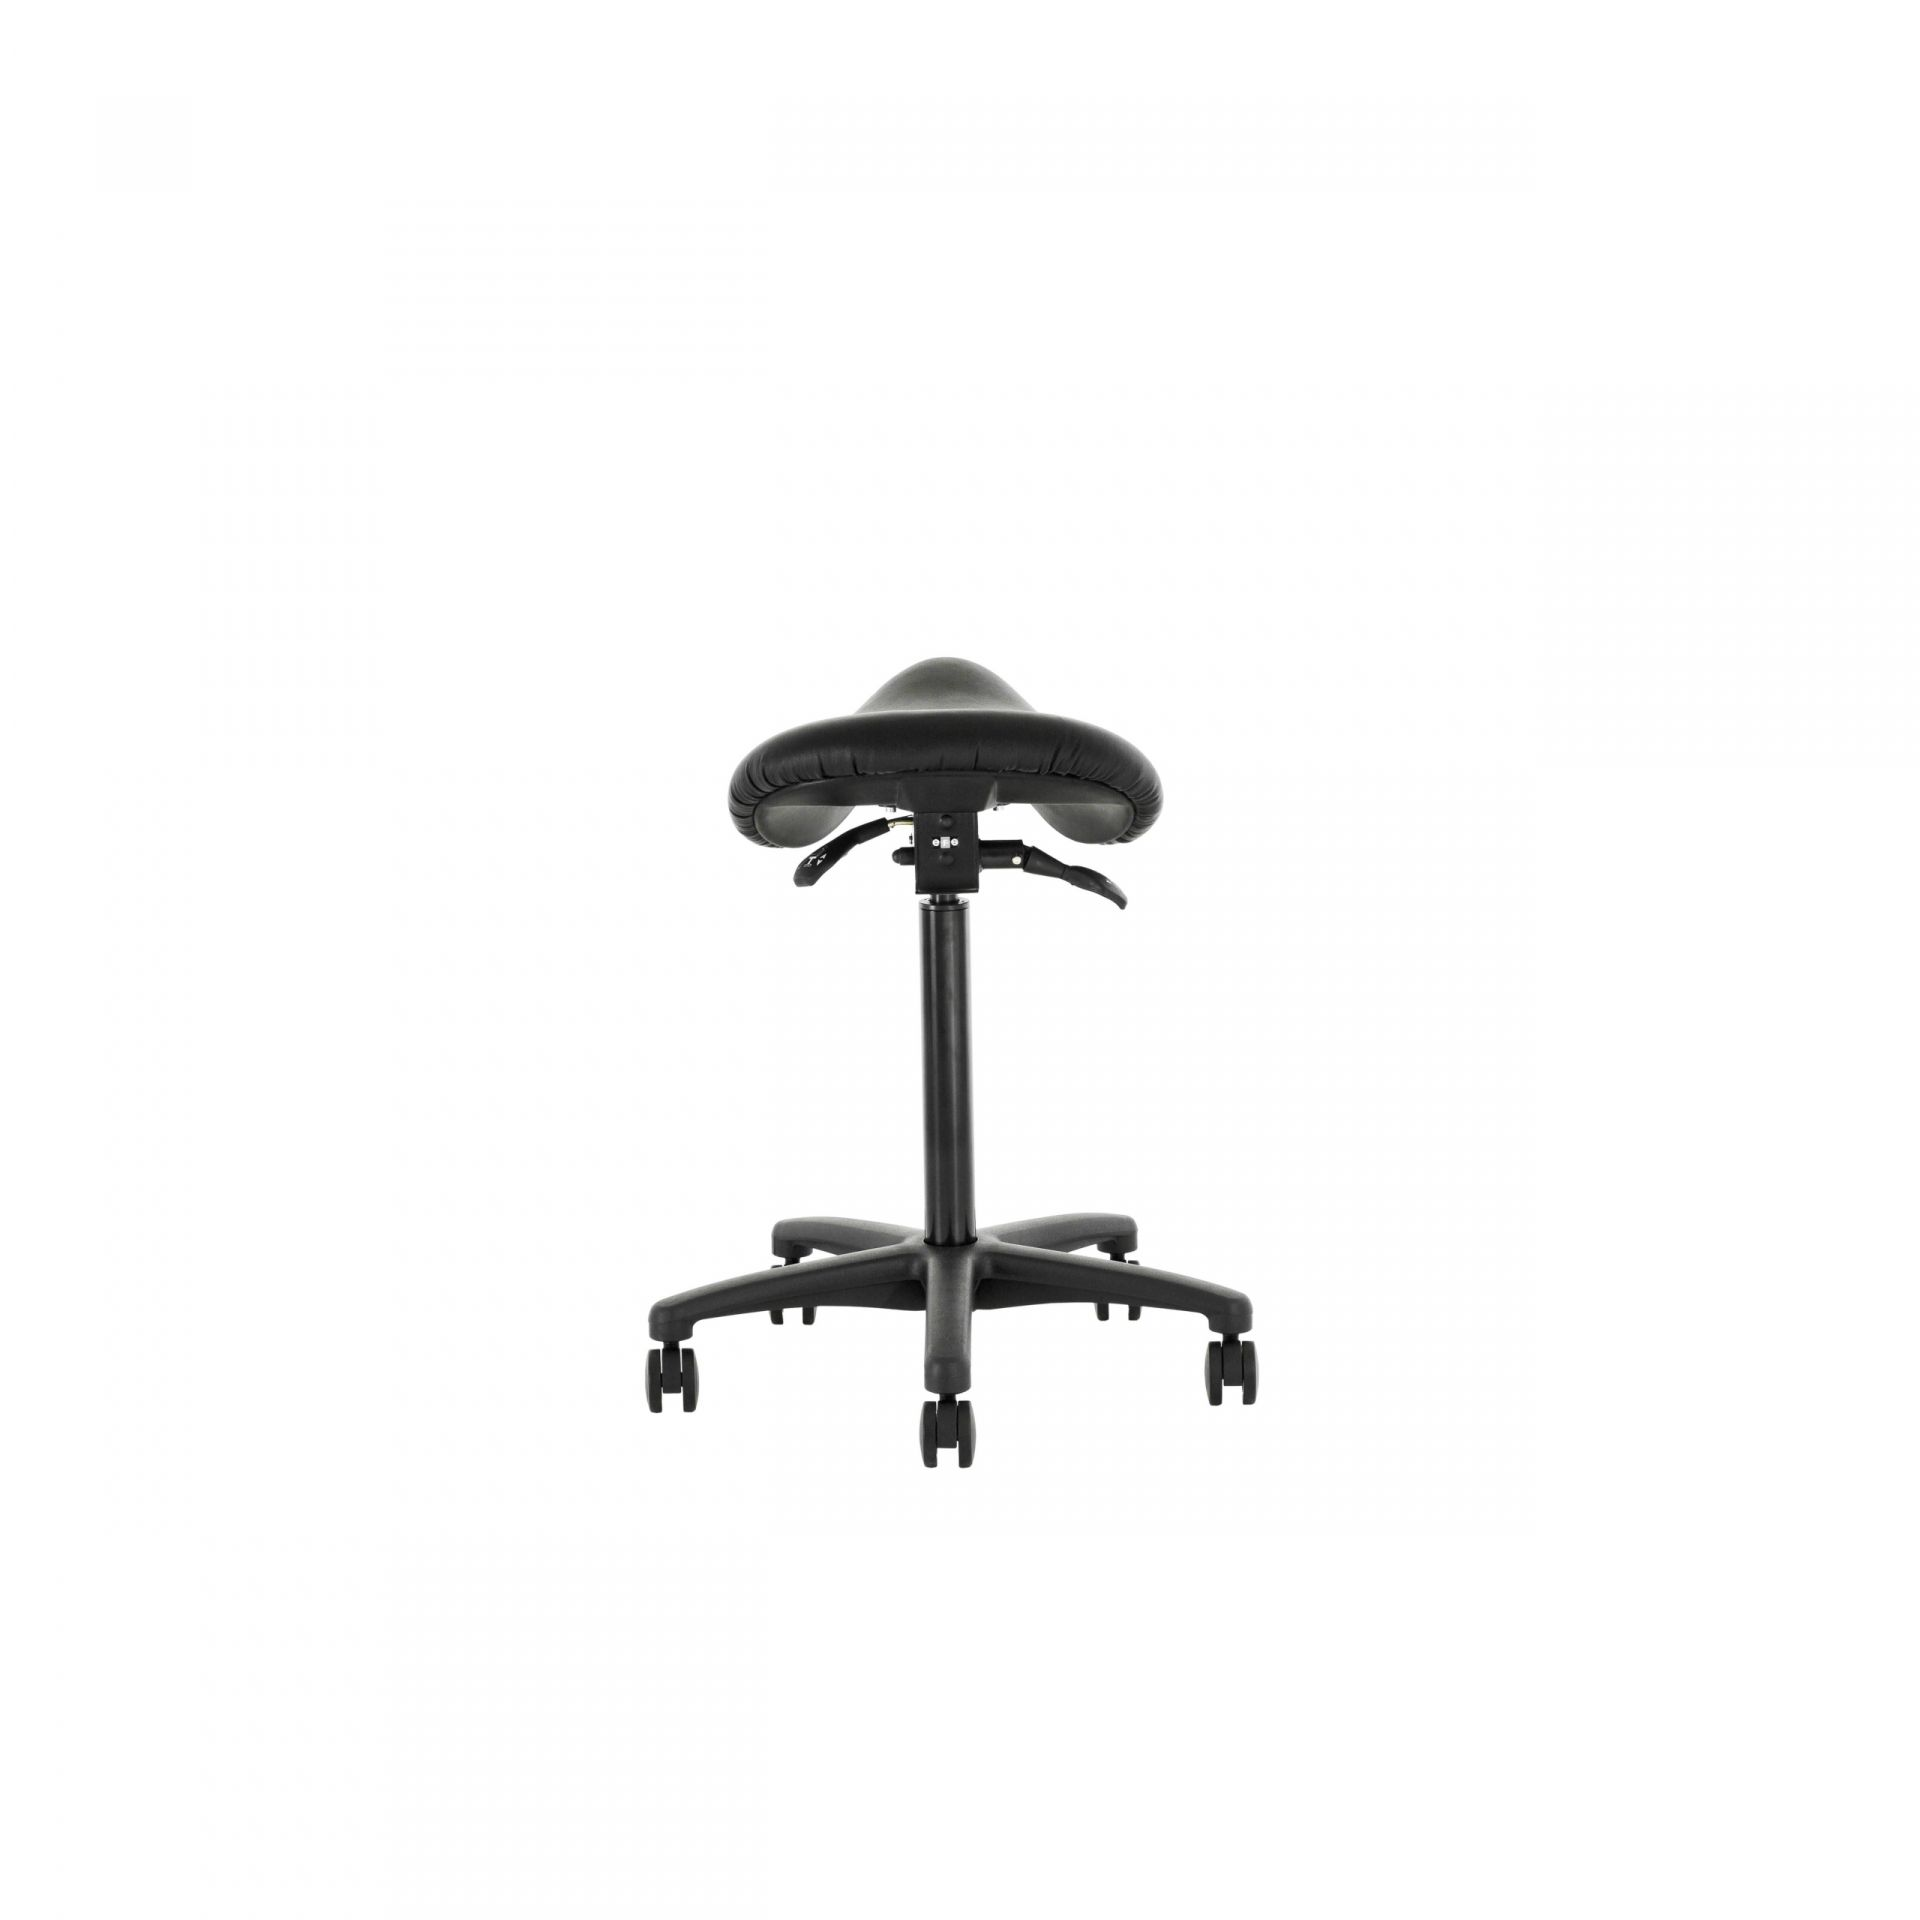 Saddle seat Office chair with saddle seat product image 4